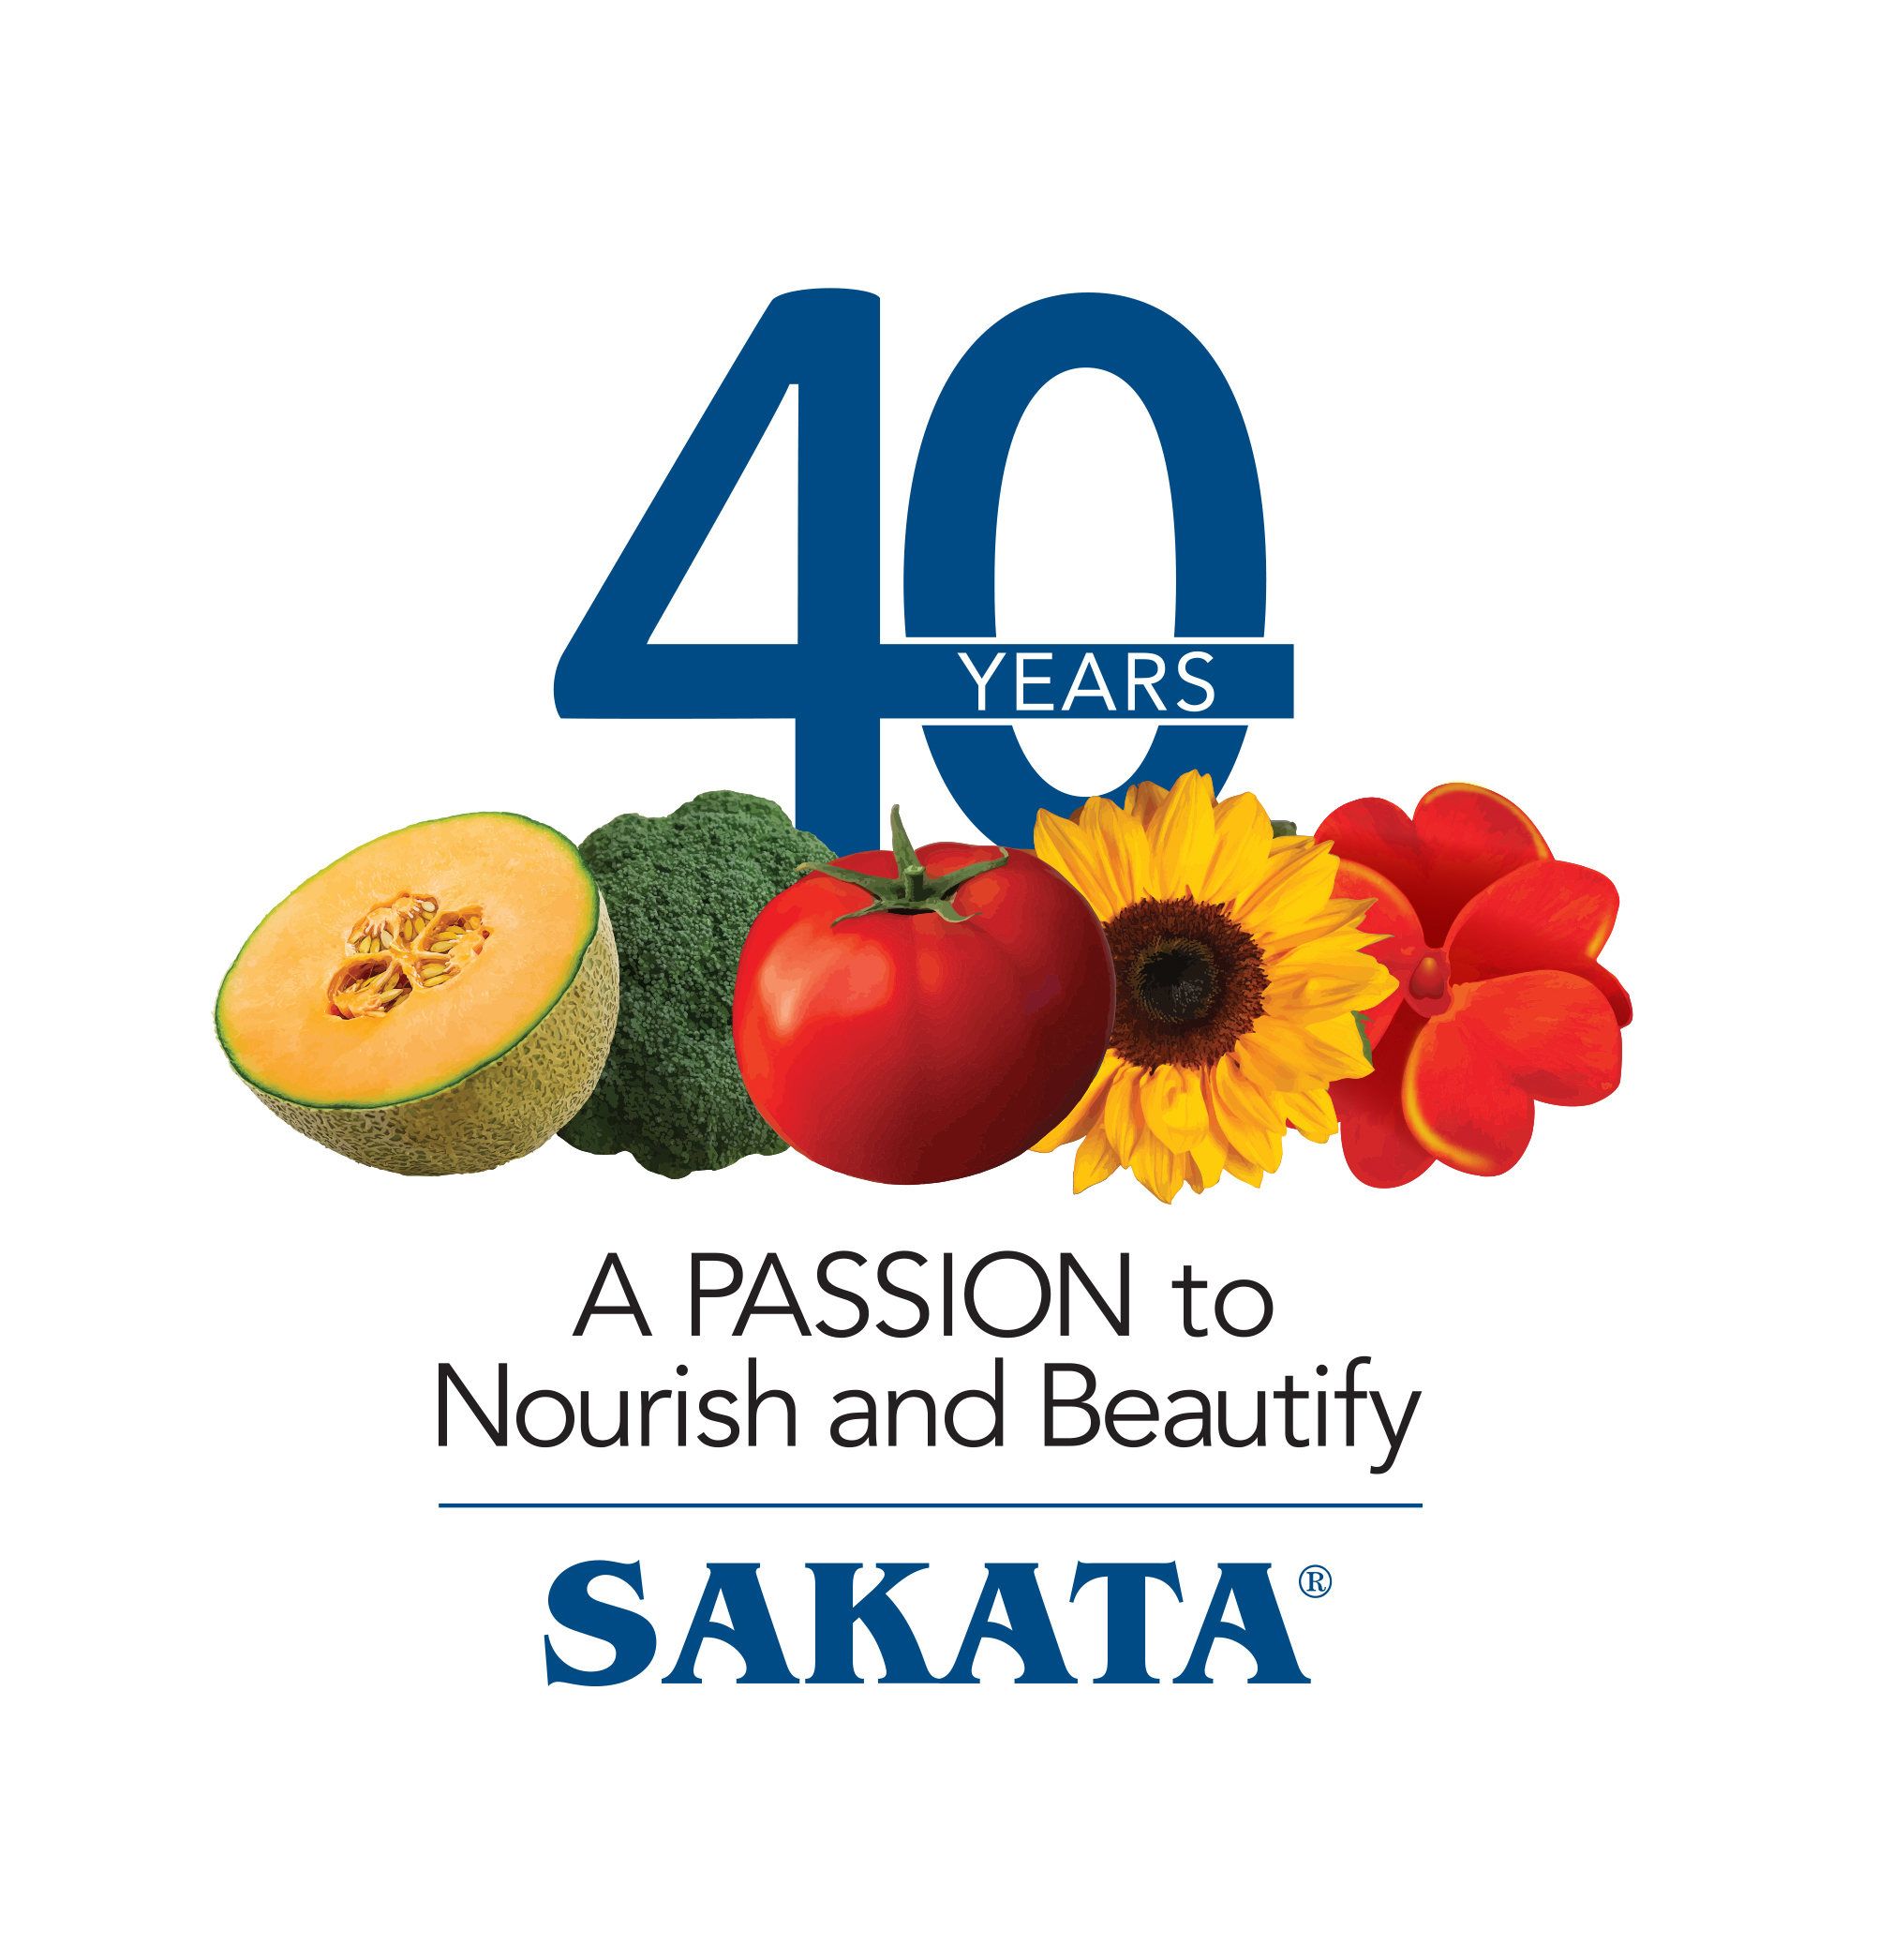 https://wordpressstorageaccount.blob.core.windows.net/wp-media/wp-content/uploads/sites/528/2018/01/Sakata_Seed_40_Anniversary_logo.jpg